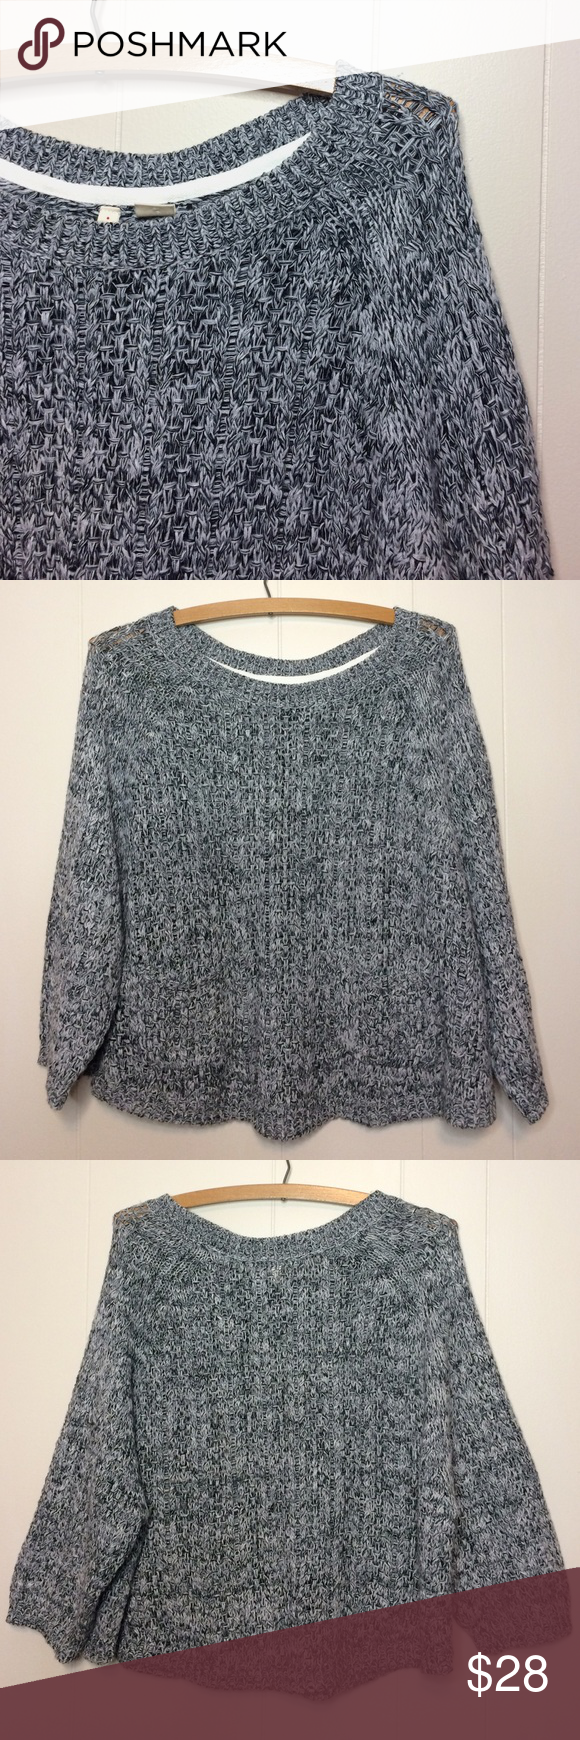 3/$10🔴Anthropologie Moth Loose Sweater | Moth, Anthropologie and ...